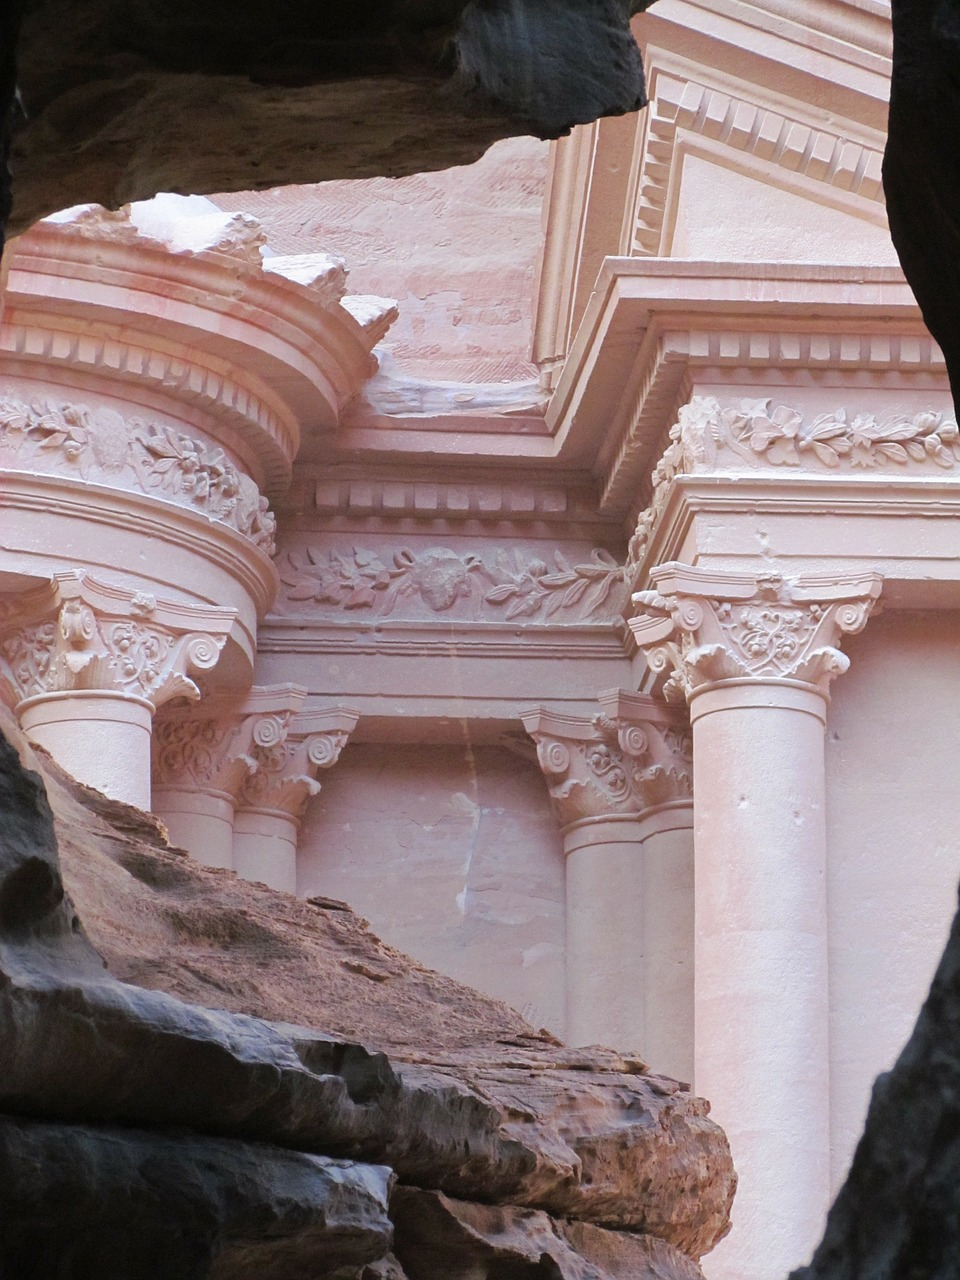 petra jordan desert free photo